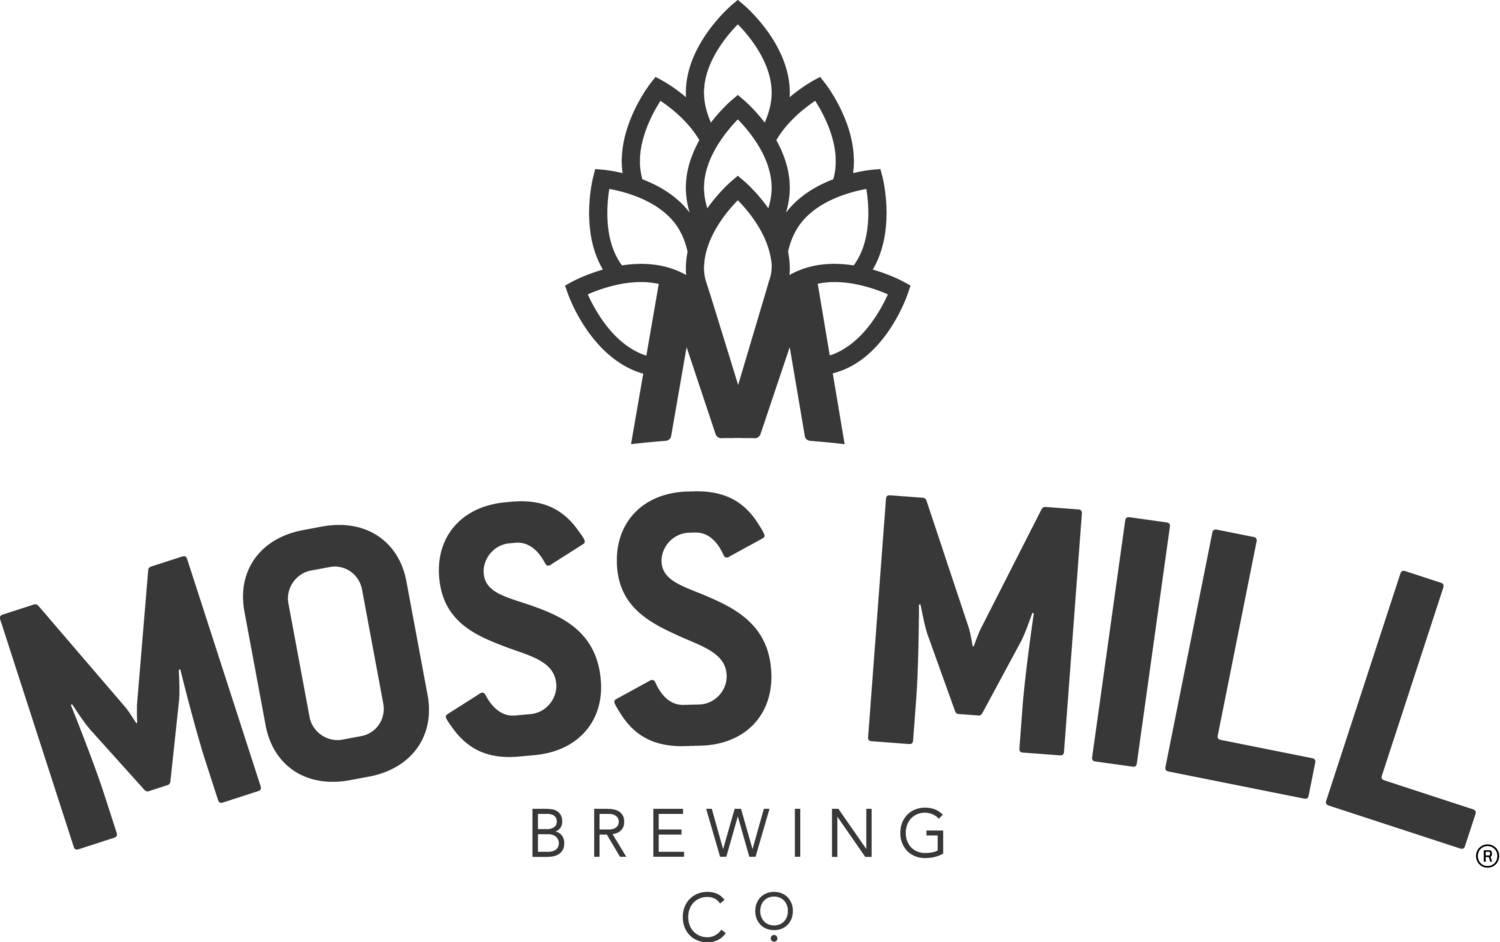 Moss Mill Brewing Company—A Nano Craft Brewery in Huntingdon Valley/Lower Southampton